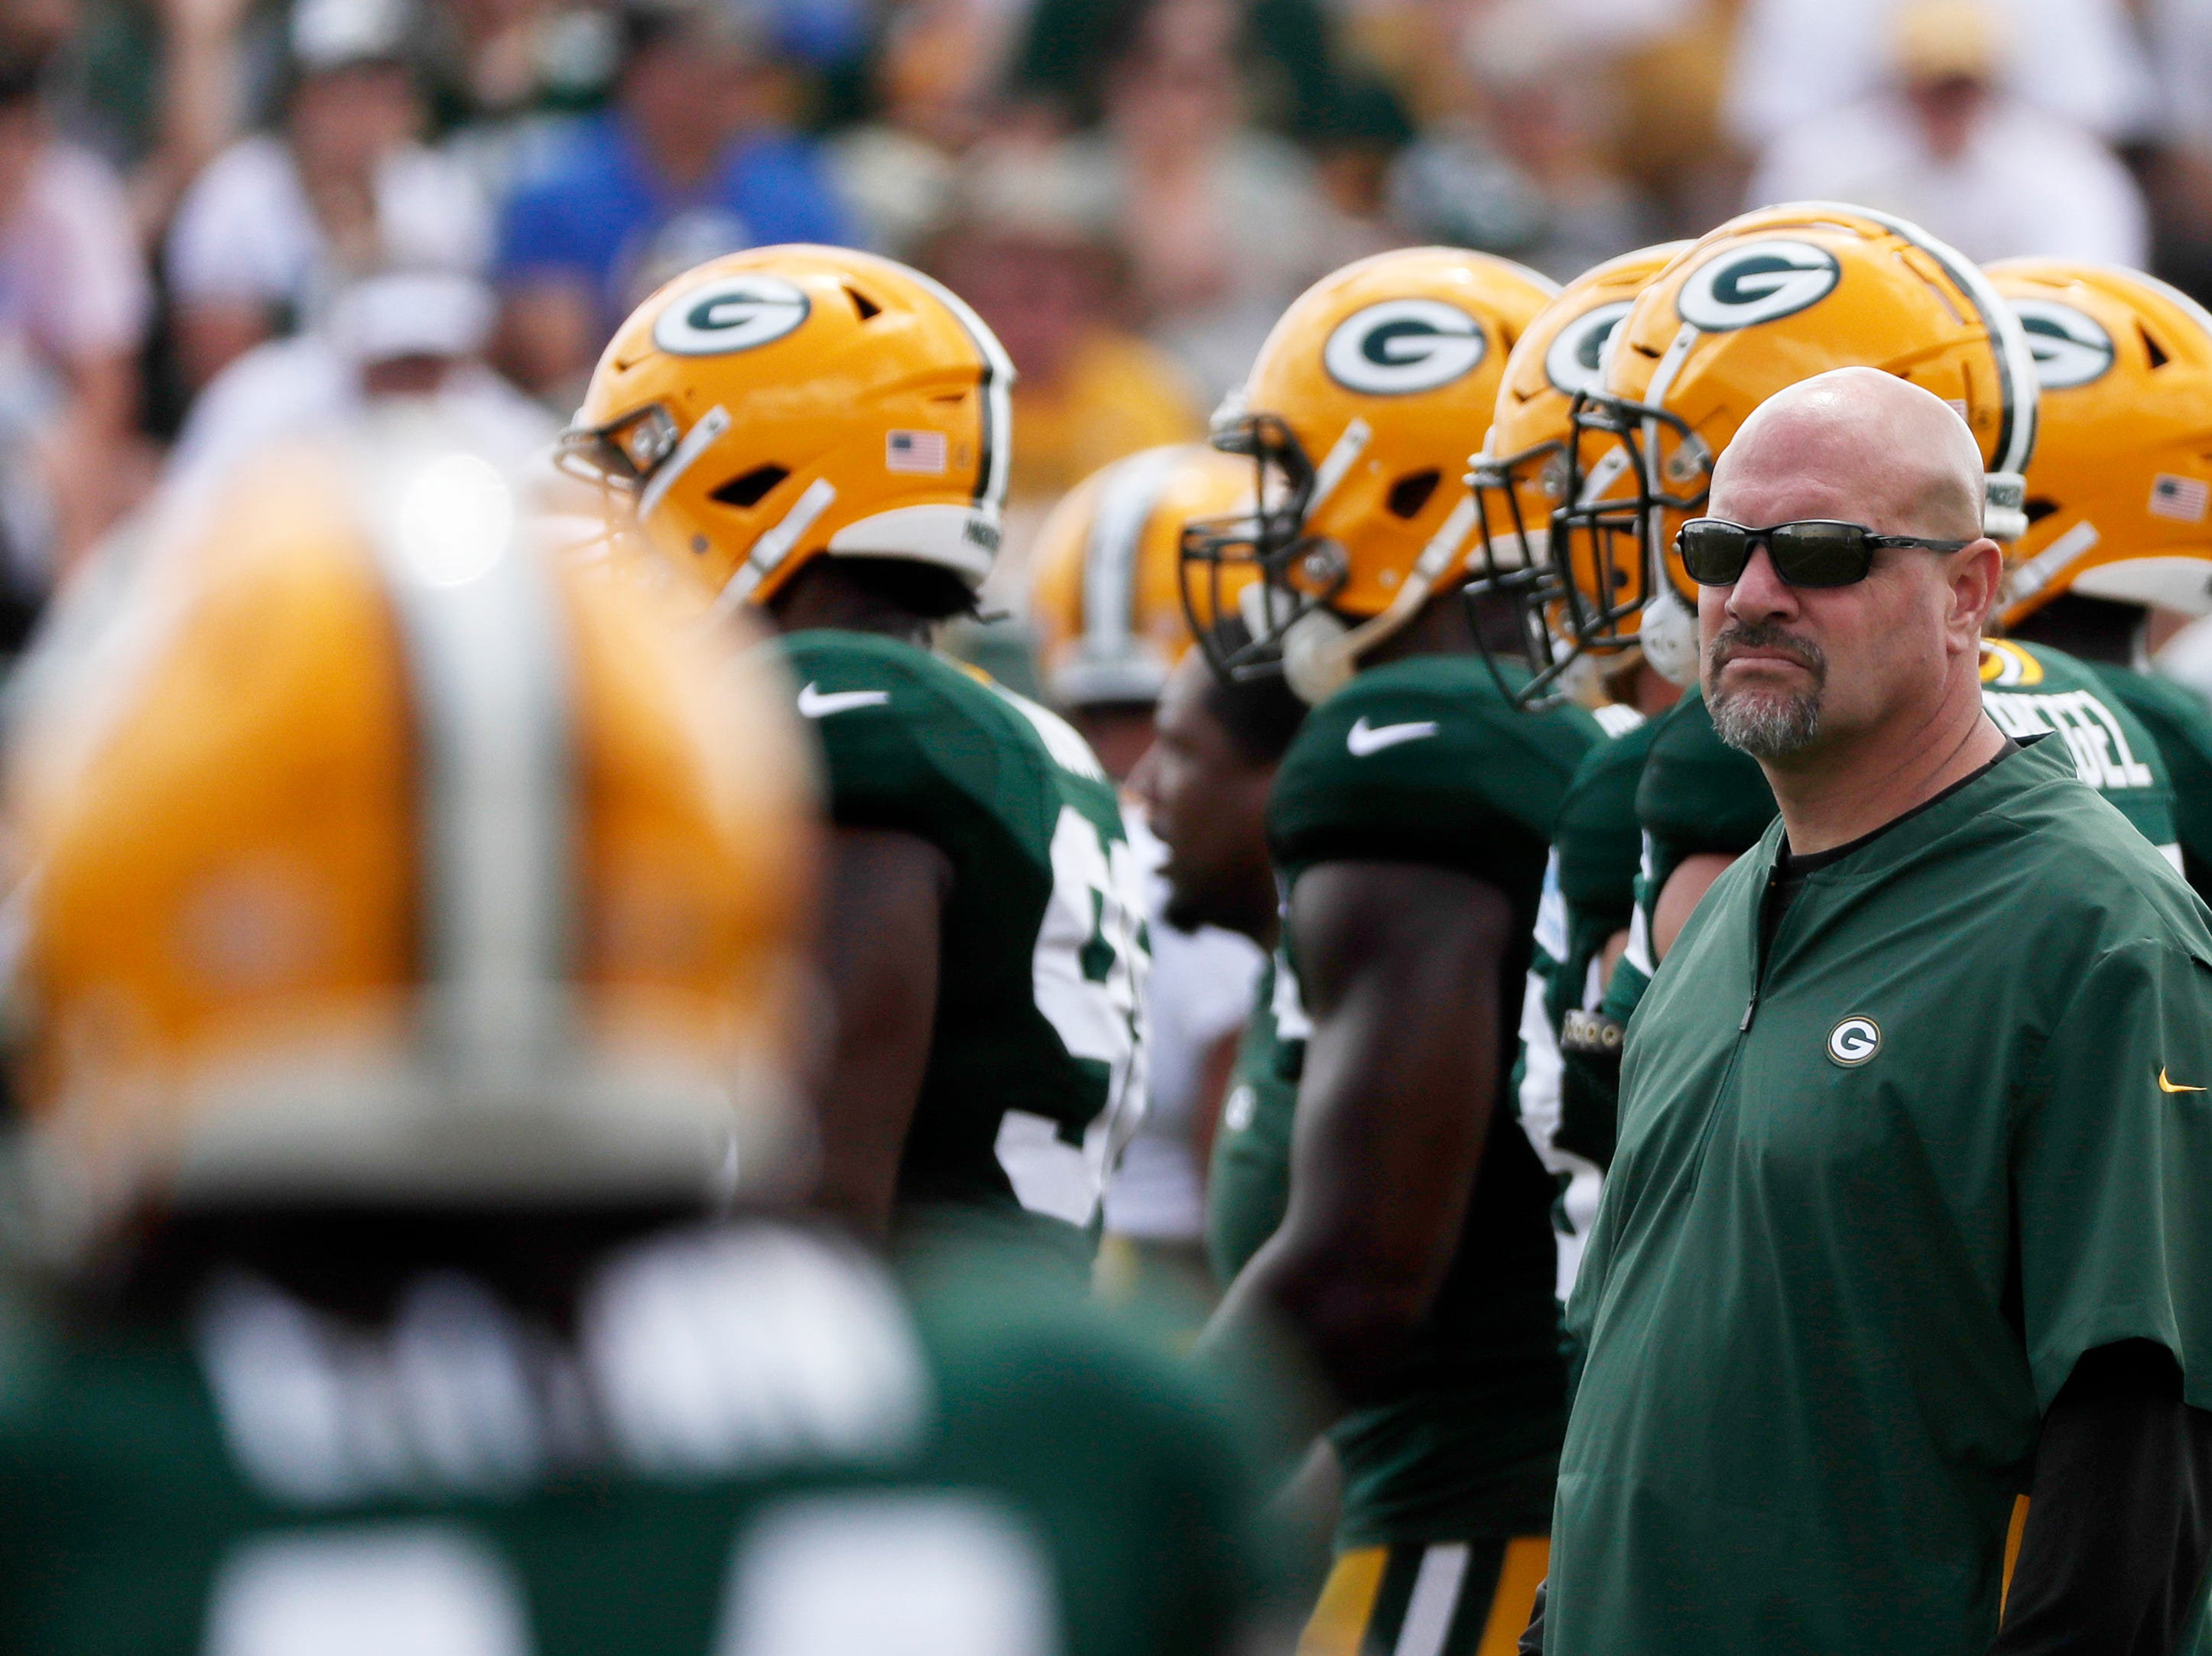 Green Bay Packers defensive coordinator Mike Pettine watches during training camp practice at Ray Nitschke Field on Friday, August 3, 2018 in Ashwaubenon, Wis. 